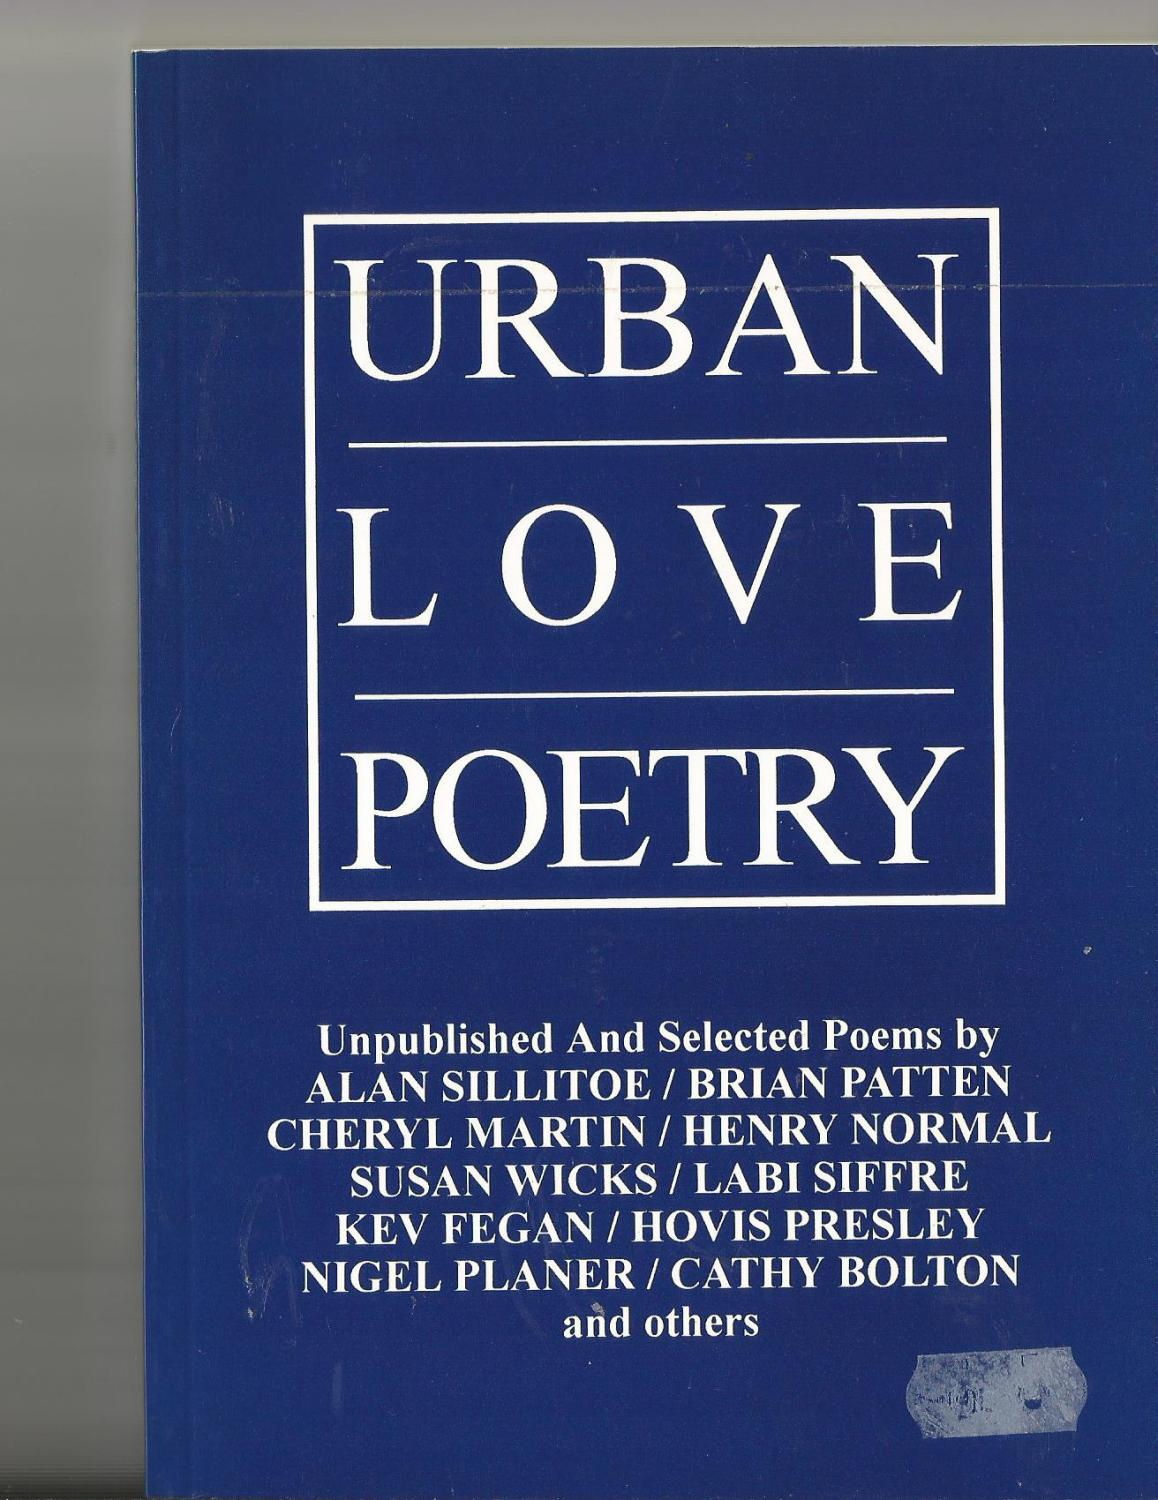 Urban Love Poetry By Sillitoe Labi Siffre Nigel Planer Brian Platten Etc Compiled Darren Poyzer Ak Press Edinburgh 9781873176214 Pictorial Card Covers